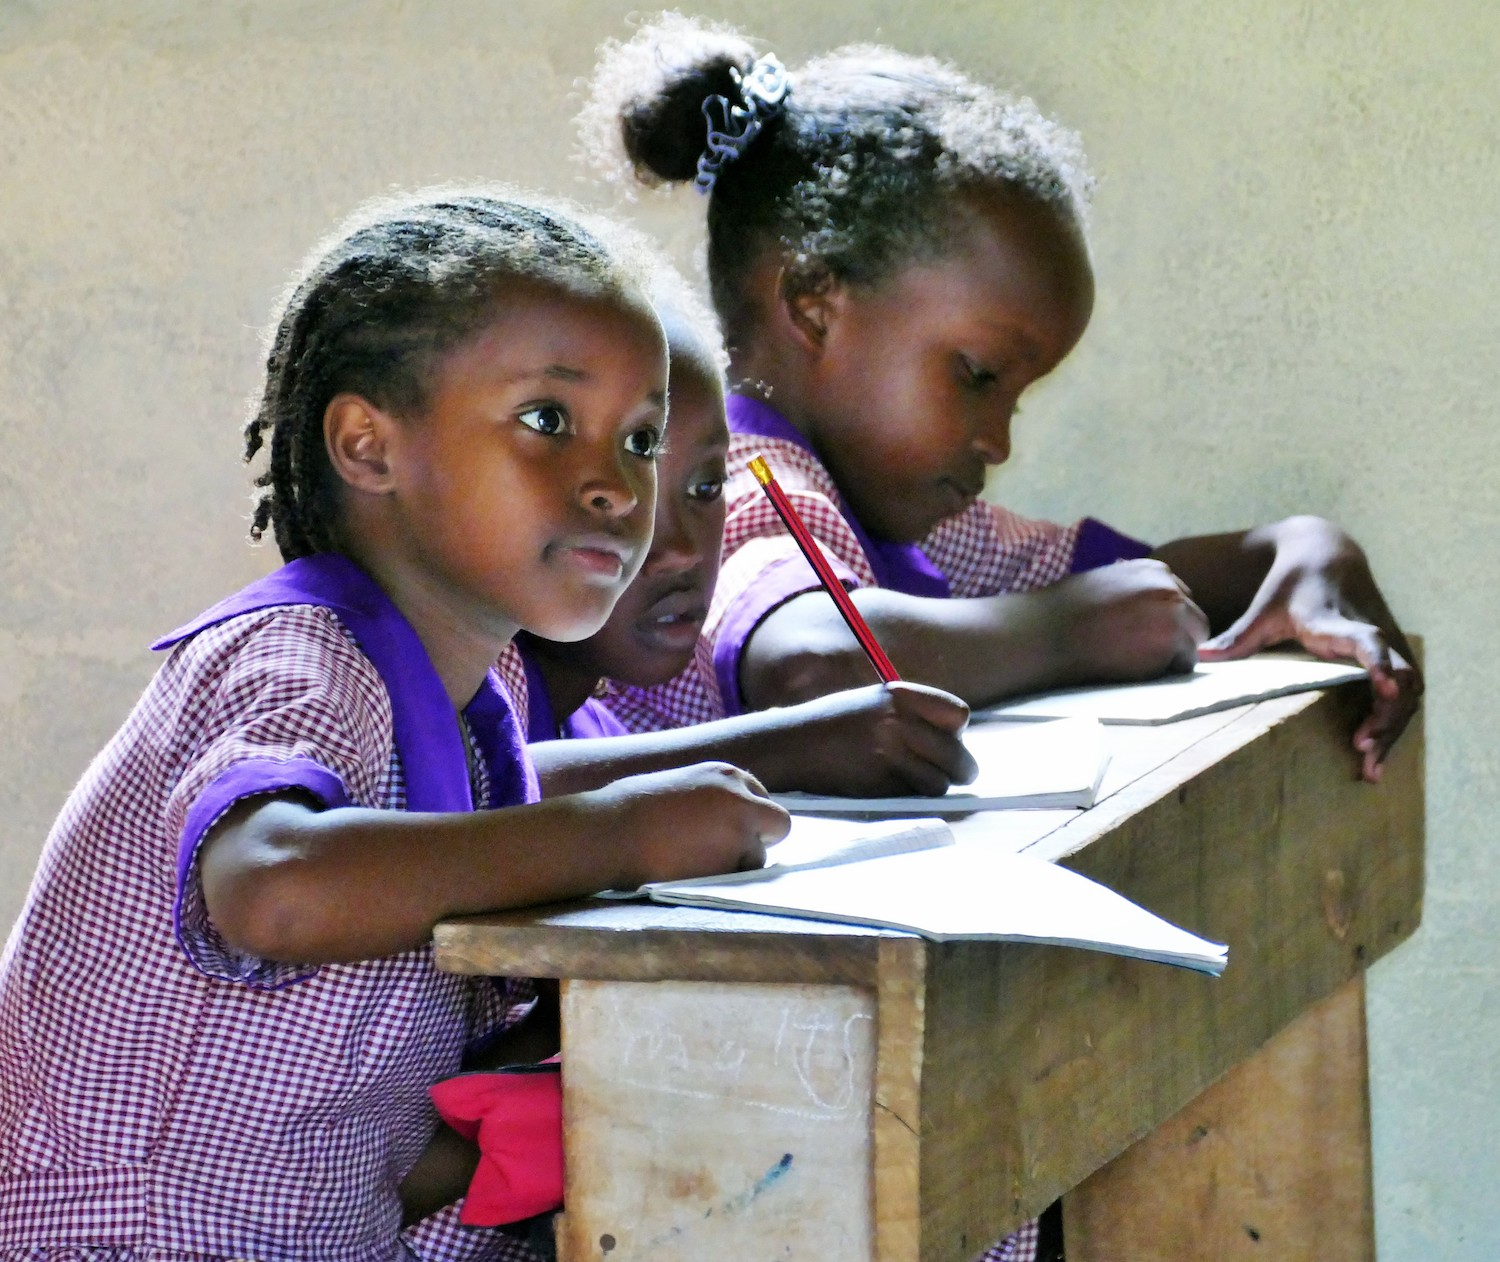 Girls at Tumaini Academy in Northern Kenya are hard at work on their lessons.